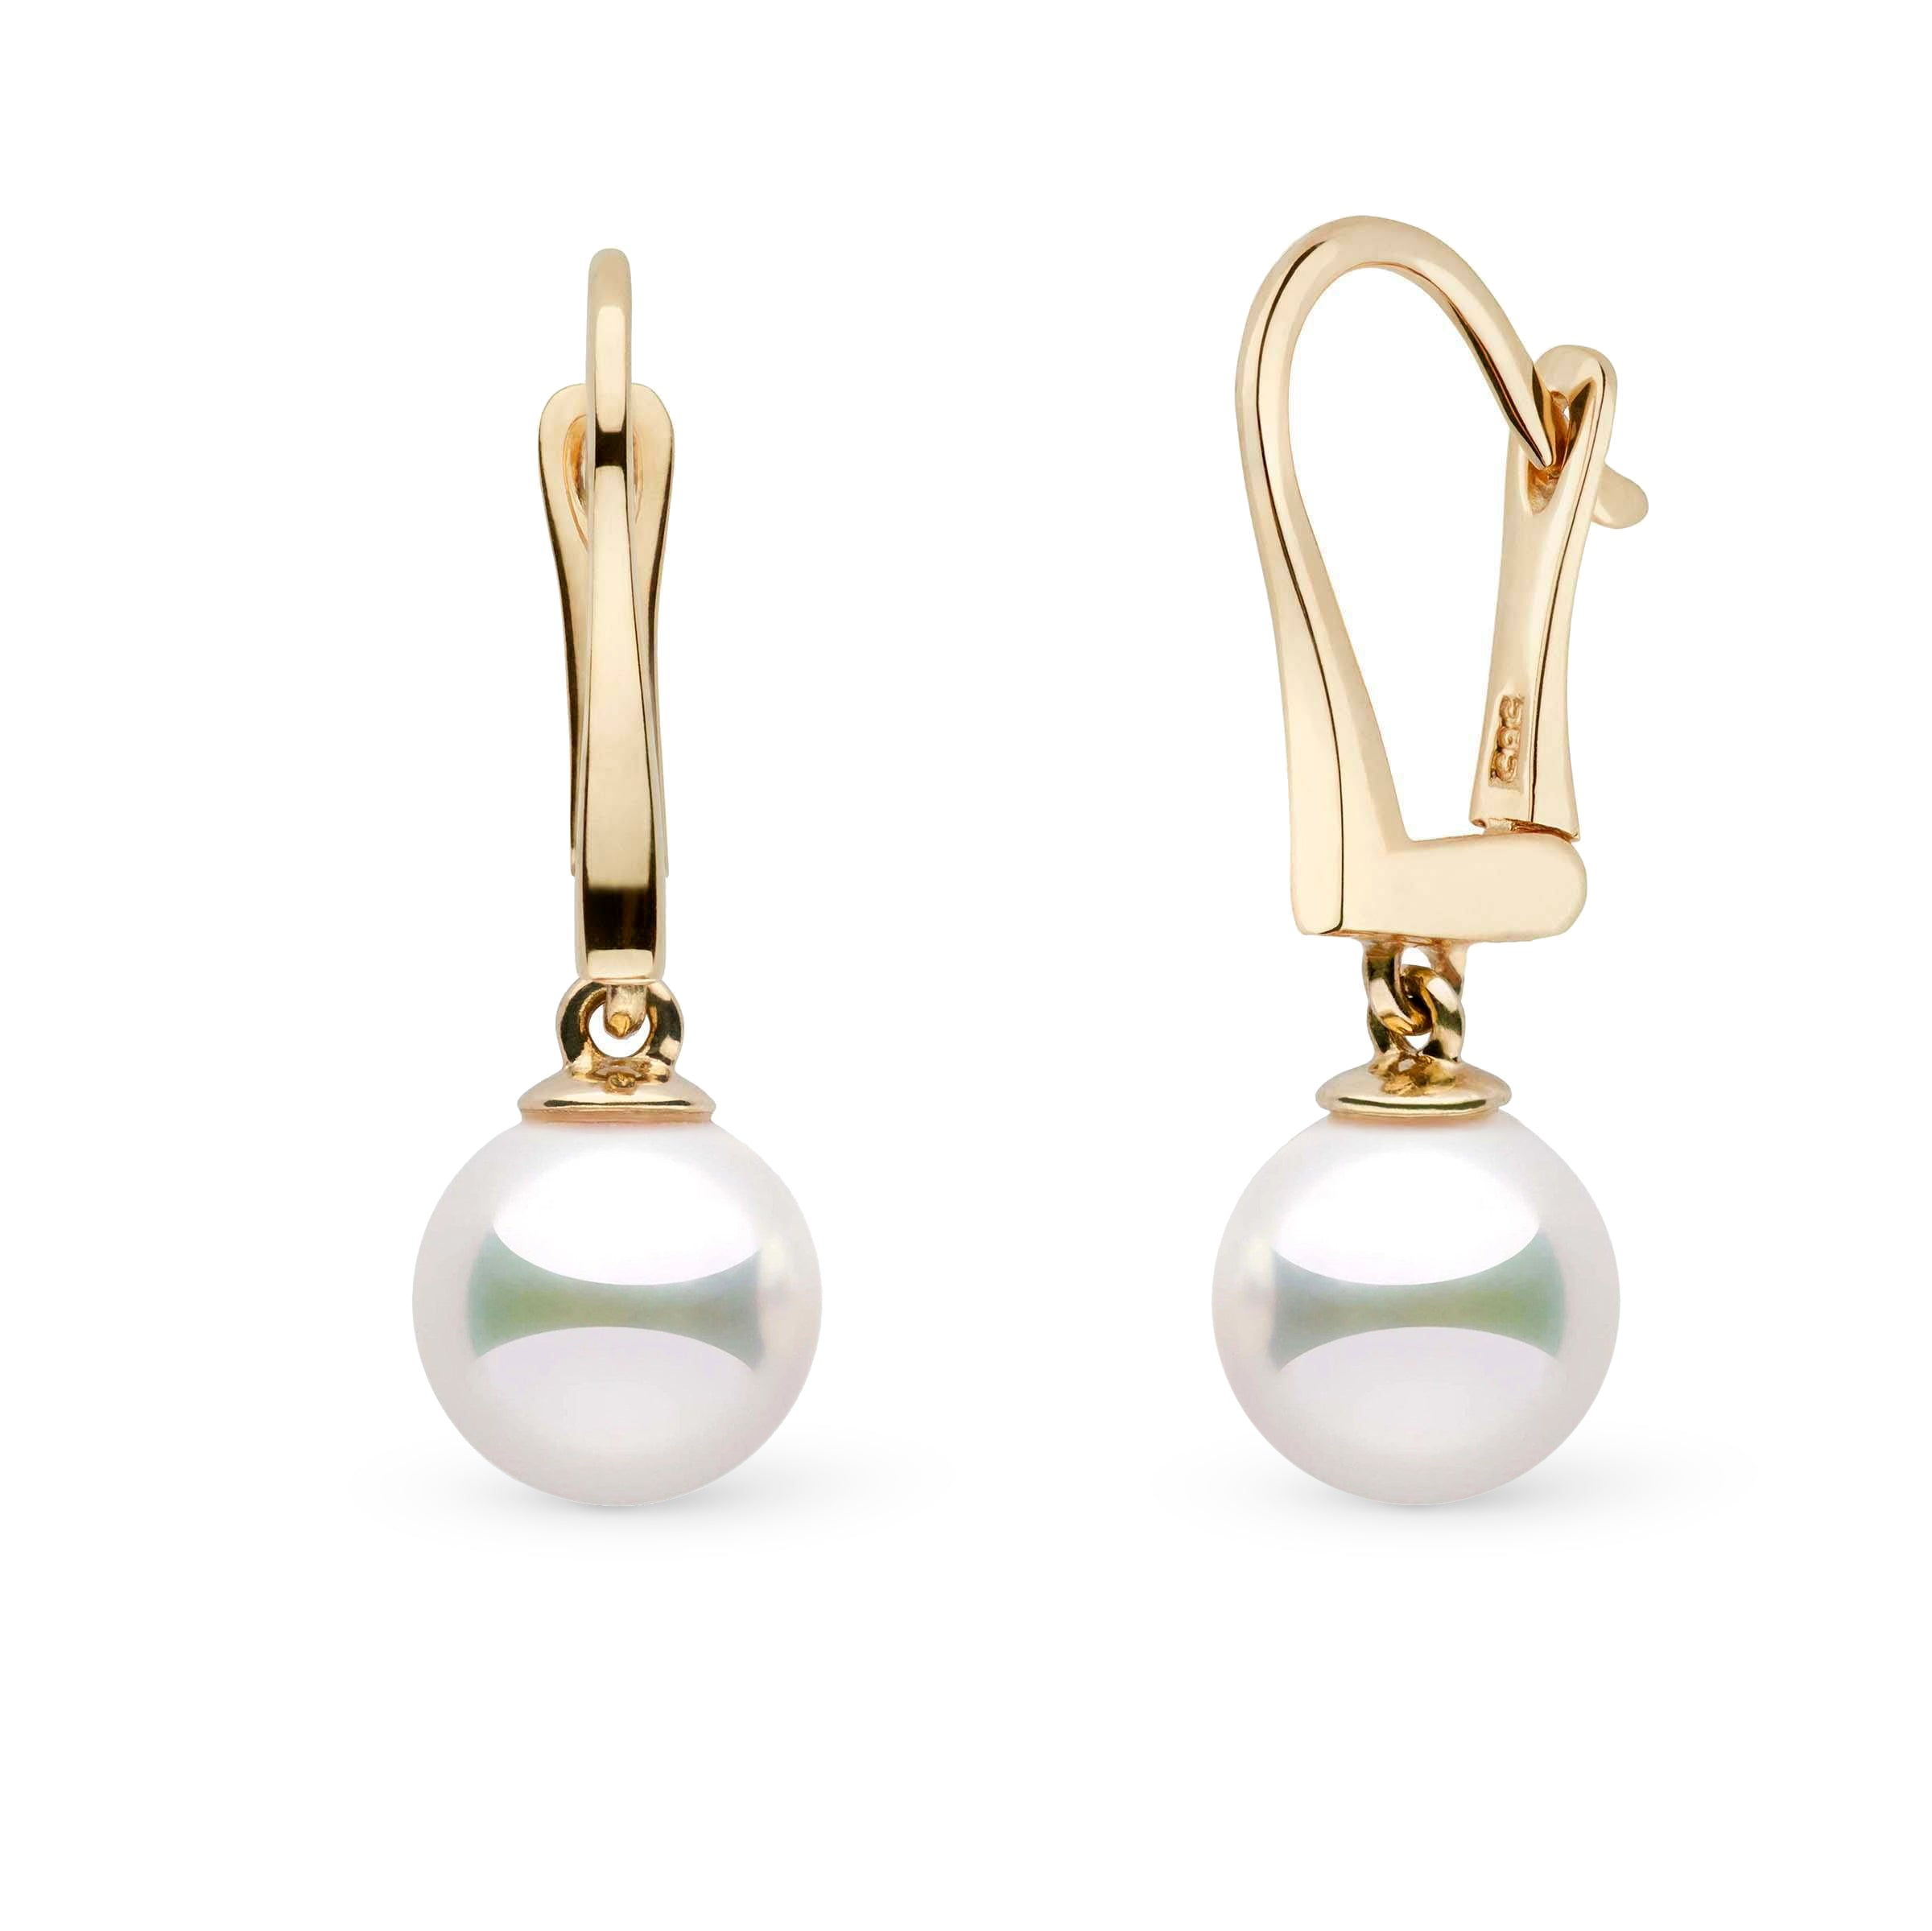 Classic Collection 8.0-8.5 mm Natural White Hanadama Pearl Dangle Earrings